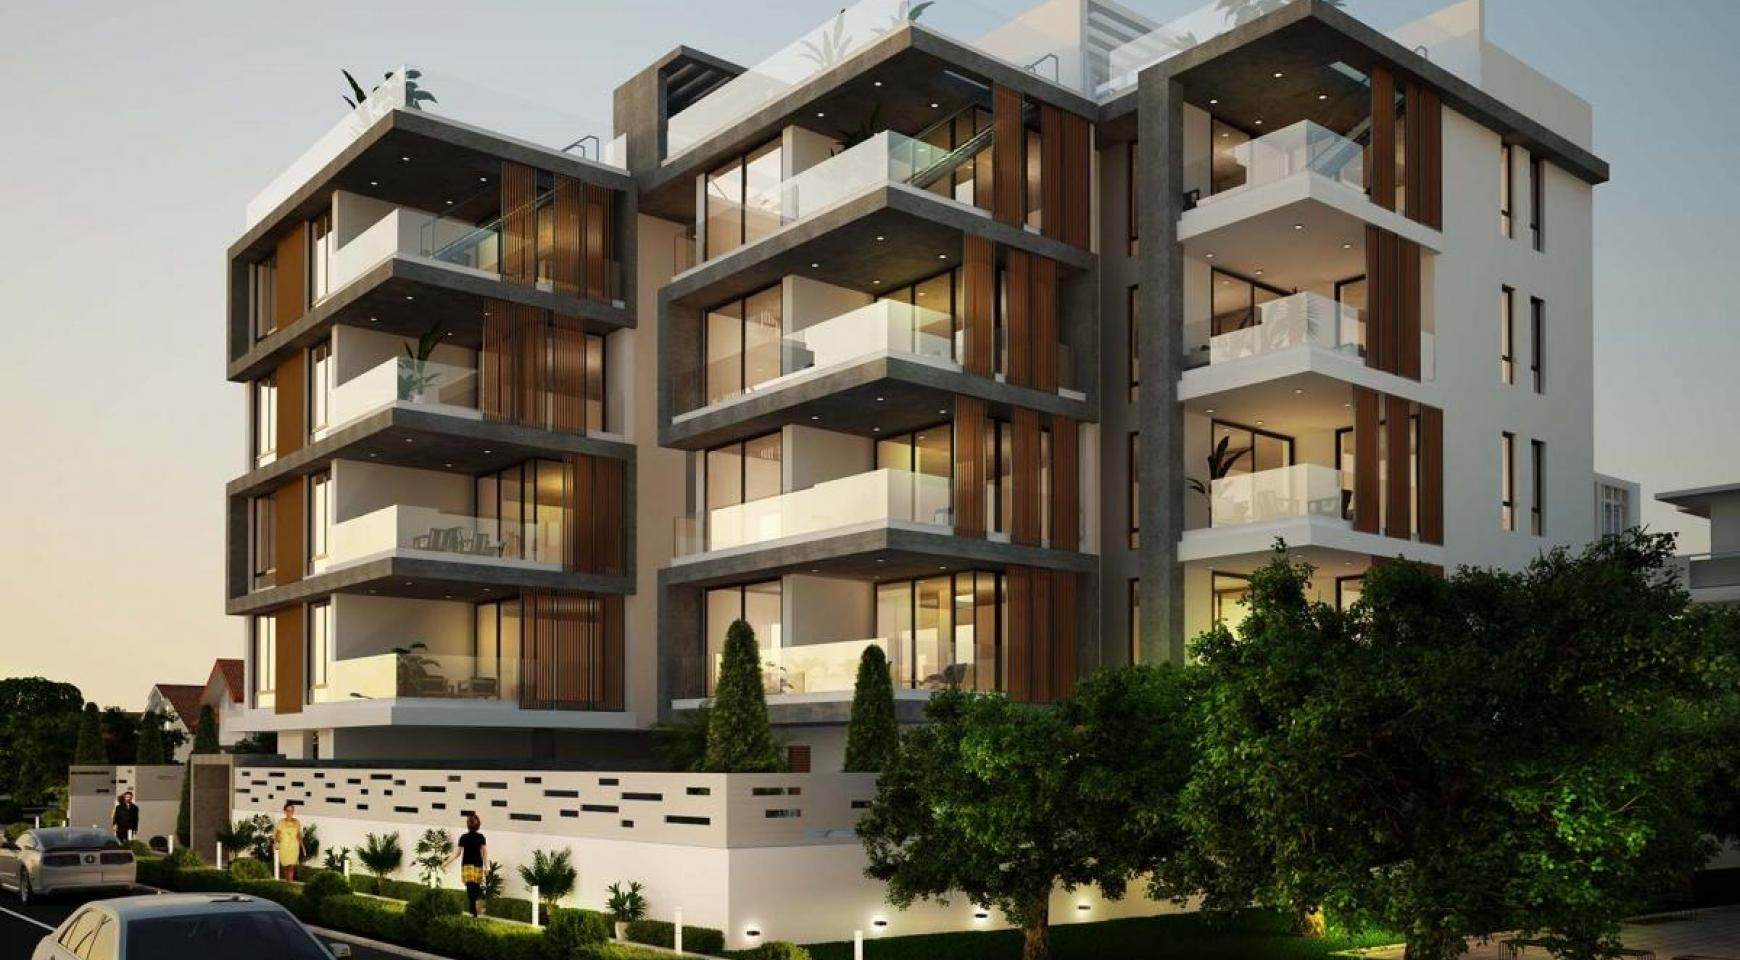 2 Bedroom Penthouse in a New Complex near the Sea - 7